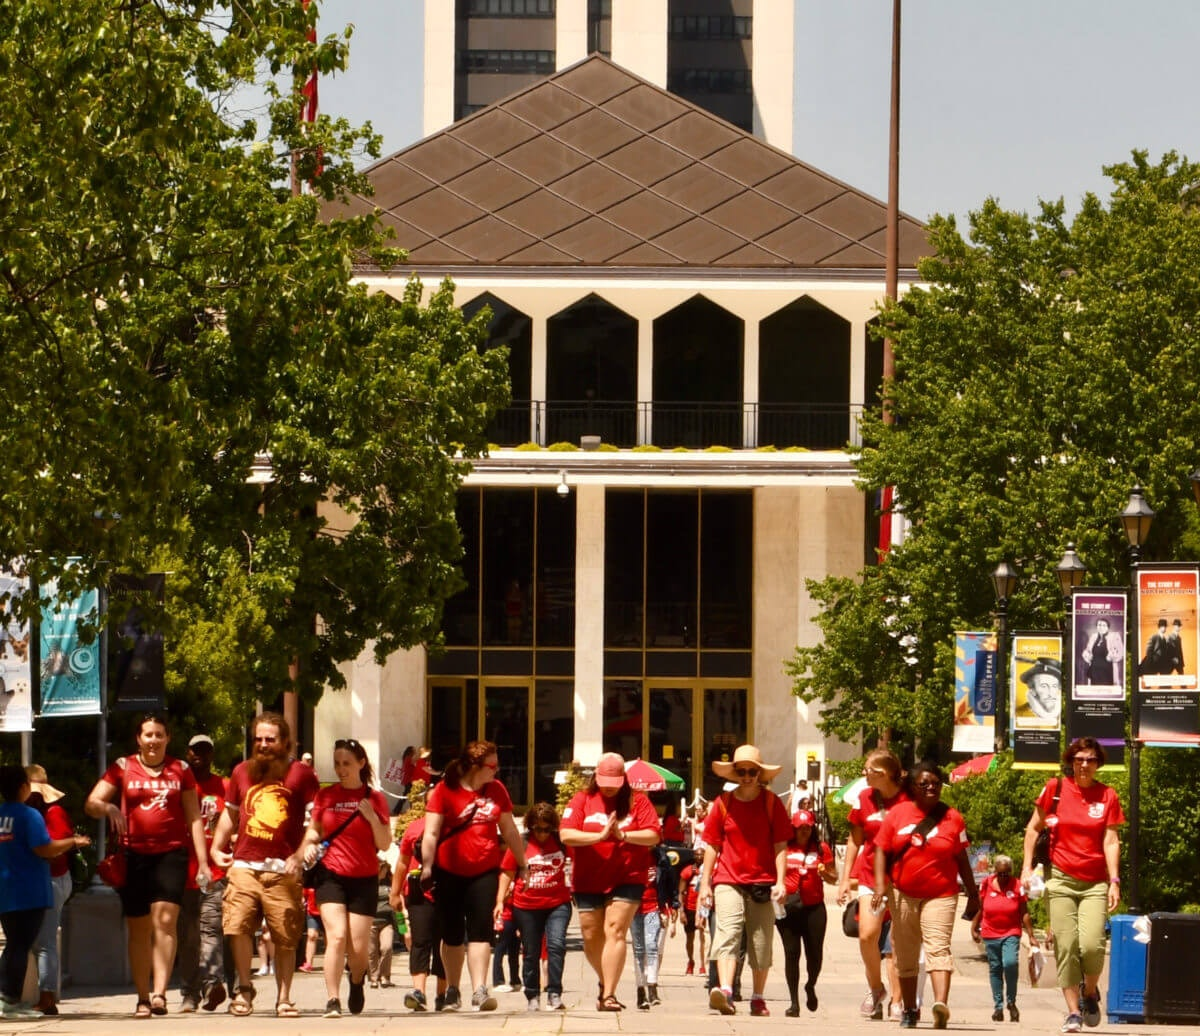 In this May 2019 file photo, teachers march to protest school funding shortfalls in North Carolina. (Image via Shutterstock)